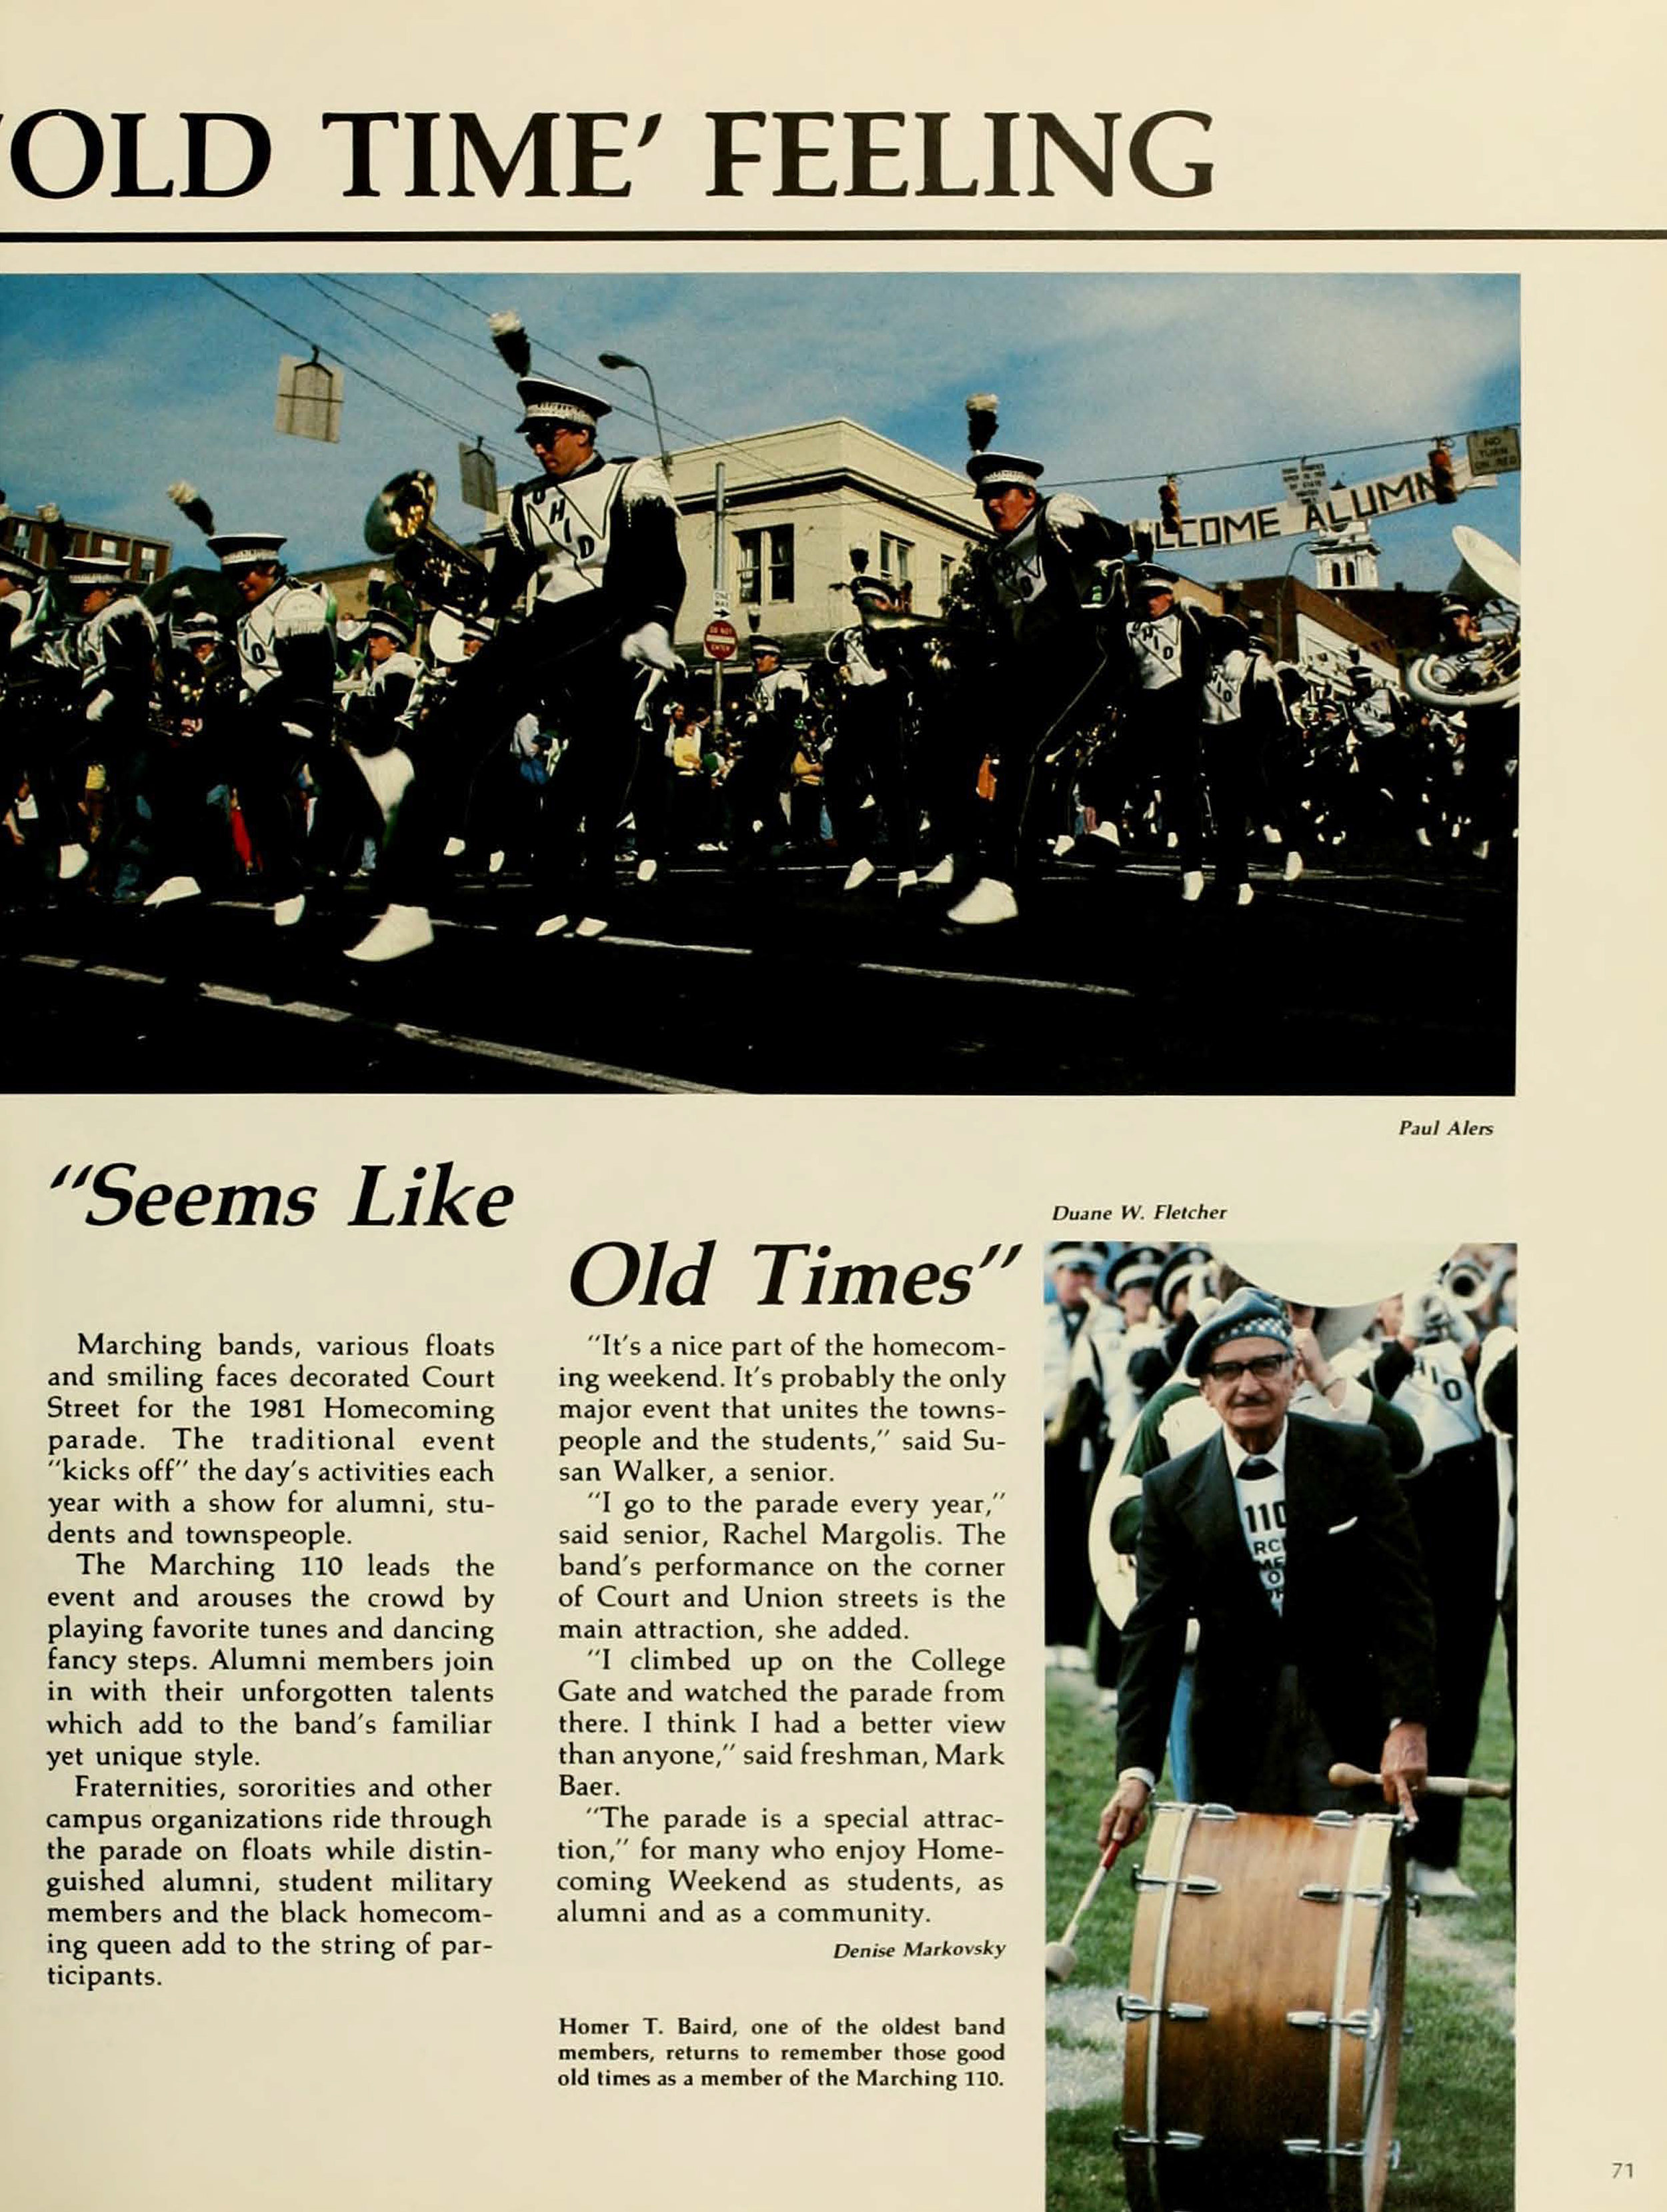 Founder Homer T. Baird is honored at halftime of the 1981 Homecoming football game at Peden Stadium. (COURTESY OF OHIO UNIVERSITY LIBRARY DIGITAL COLLECTION)